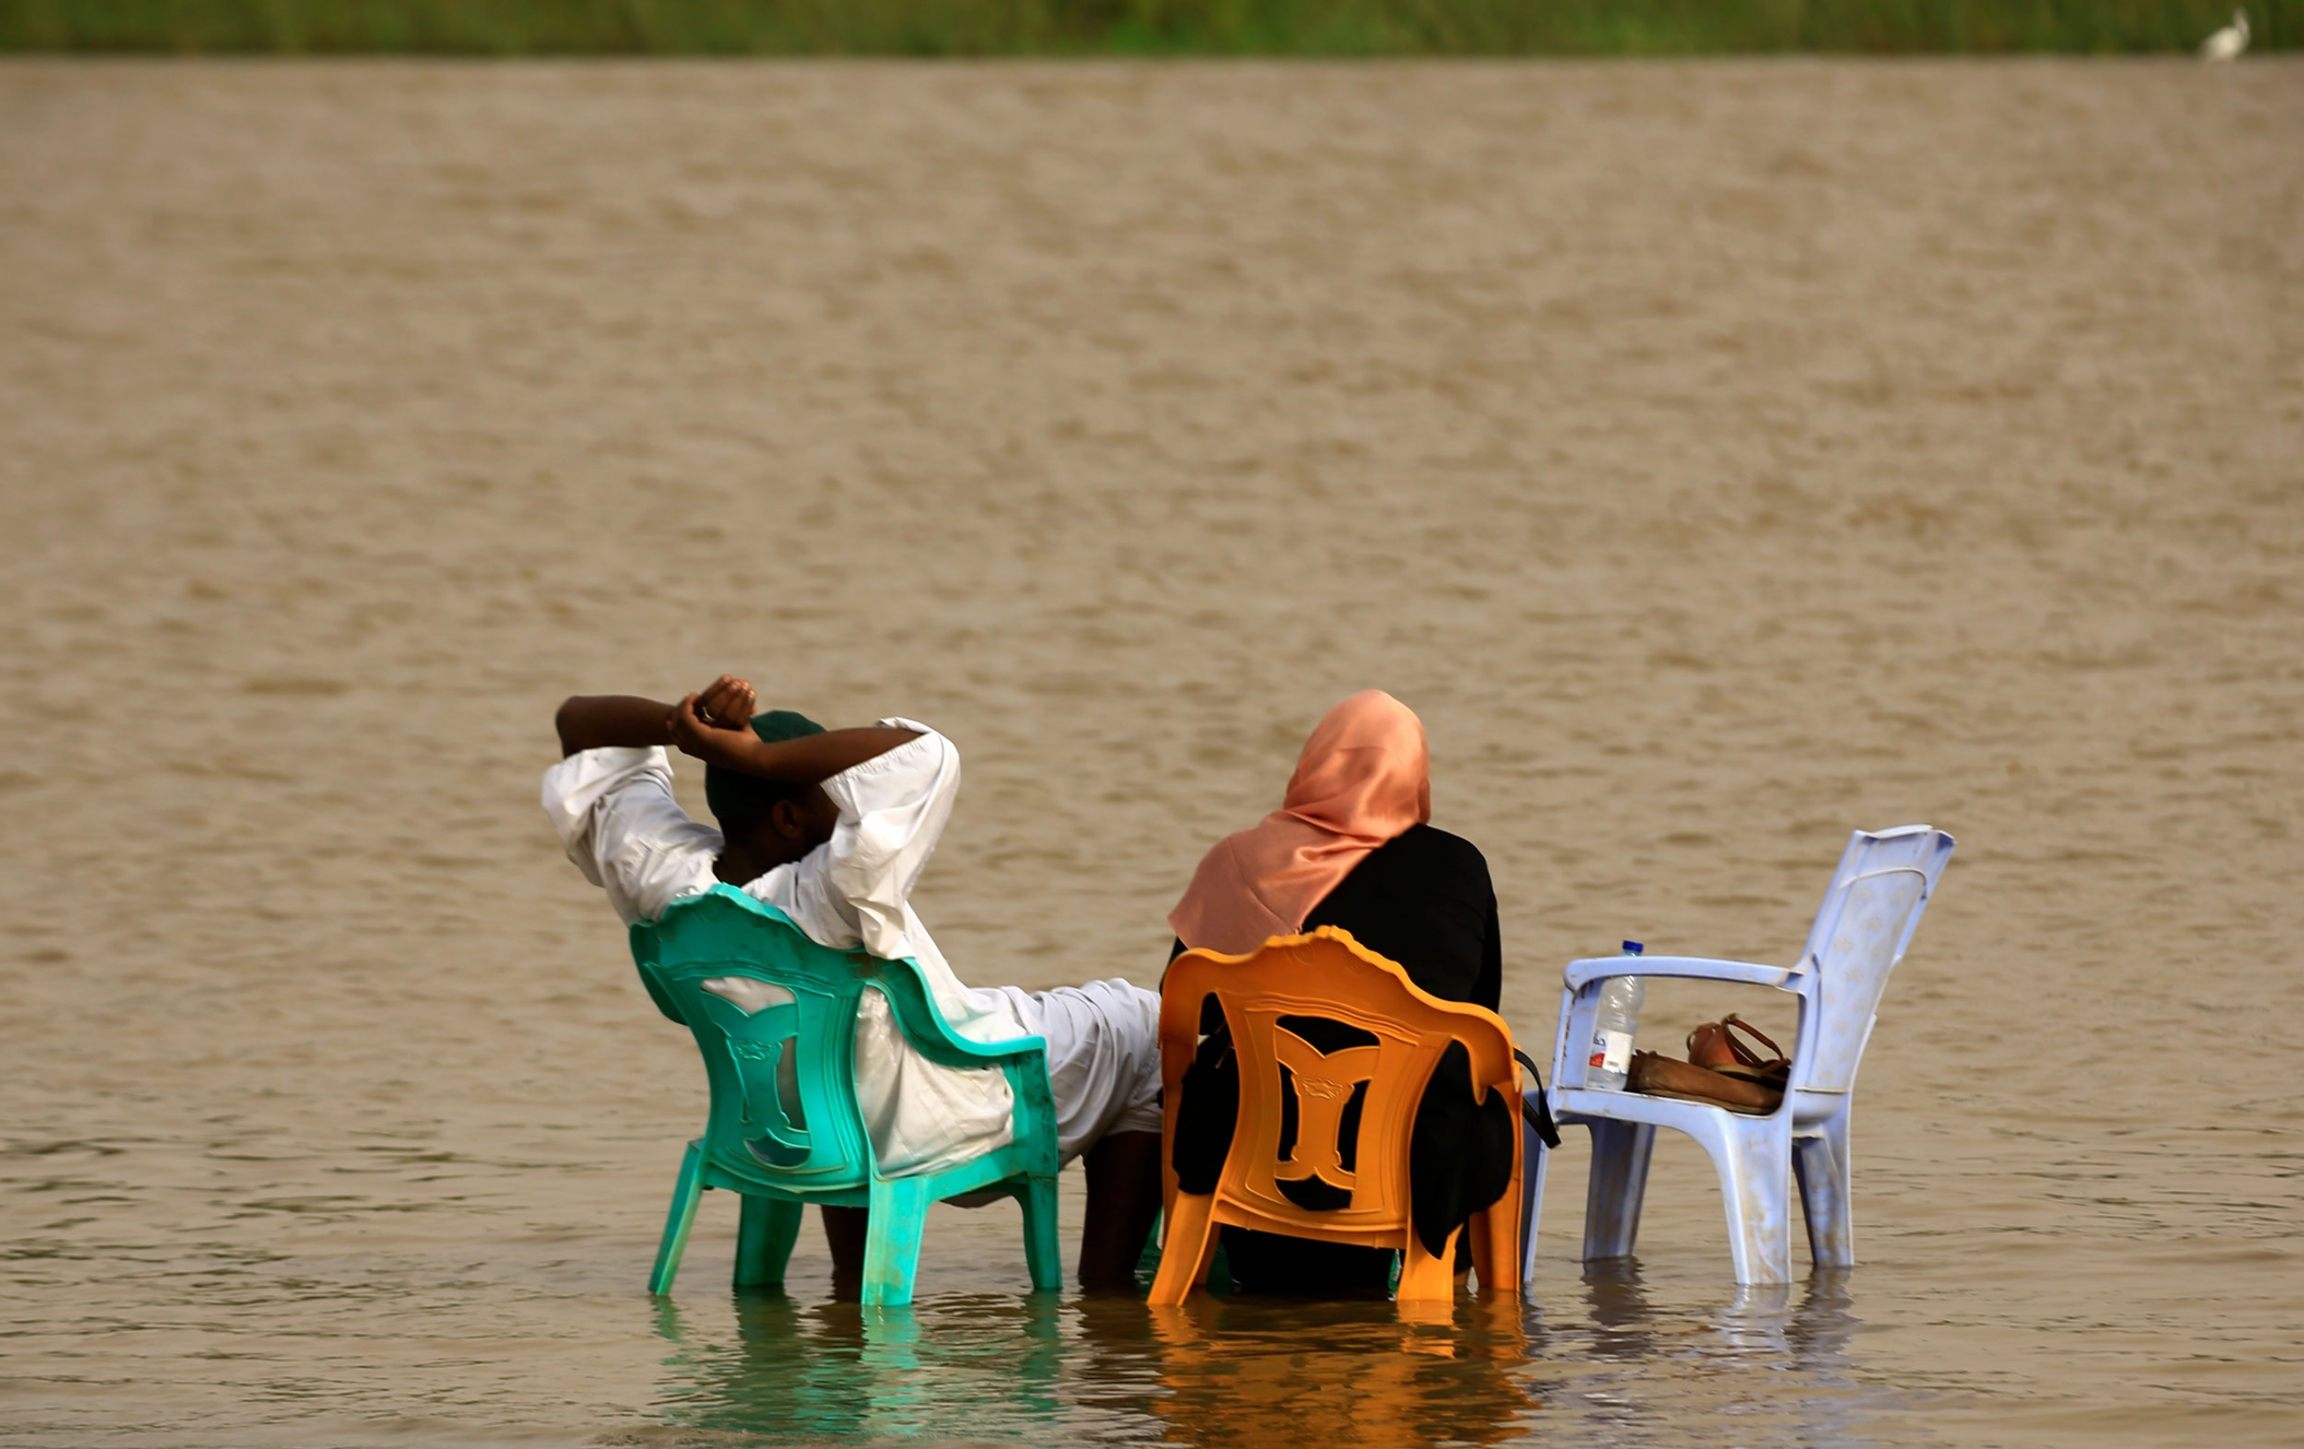 A man and woman are shown from behind both sitting in plastic chairs submerged in the water to their ankles.